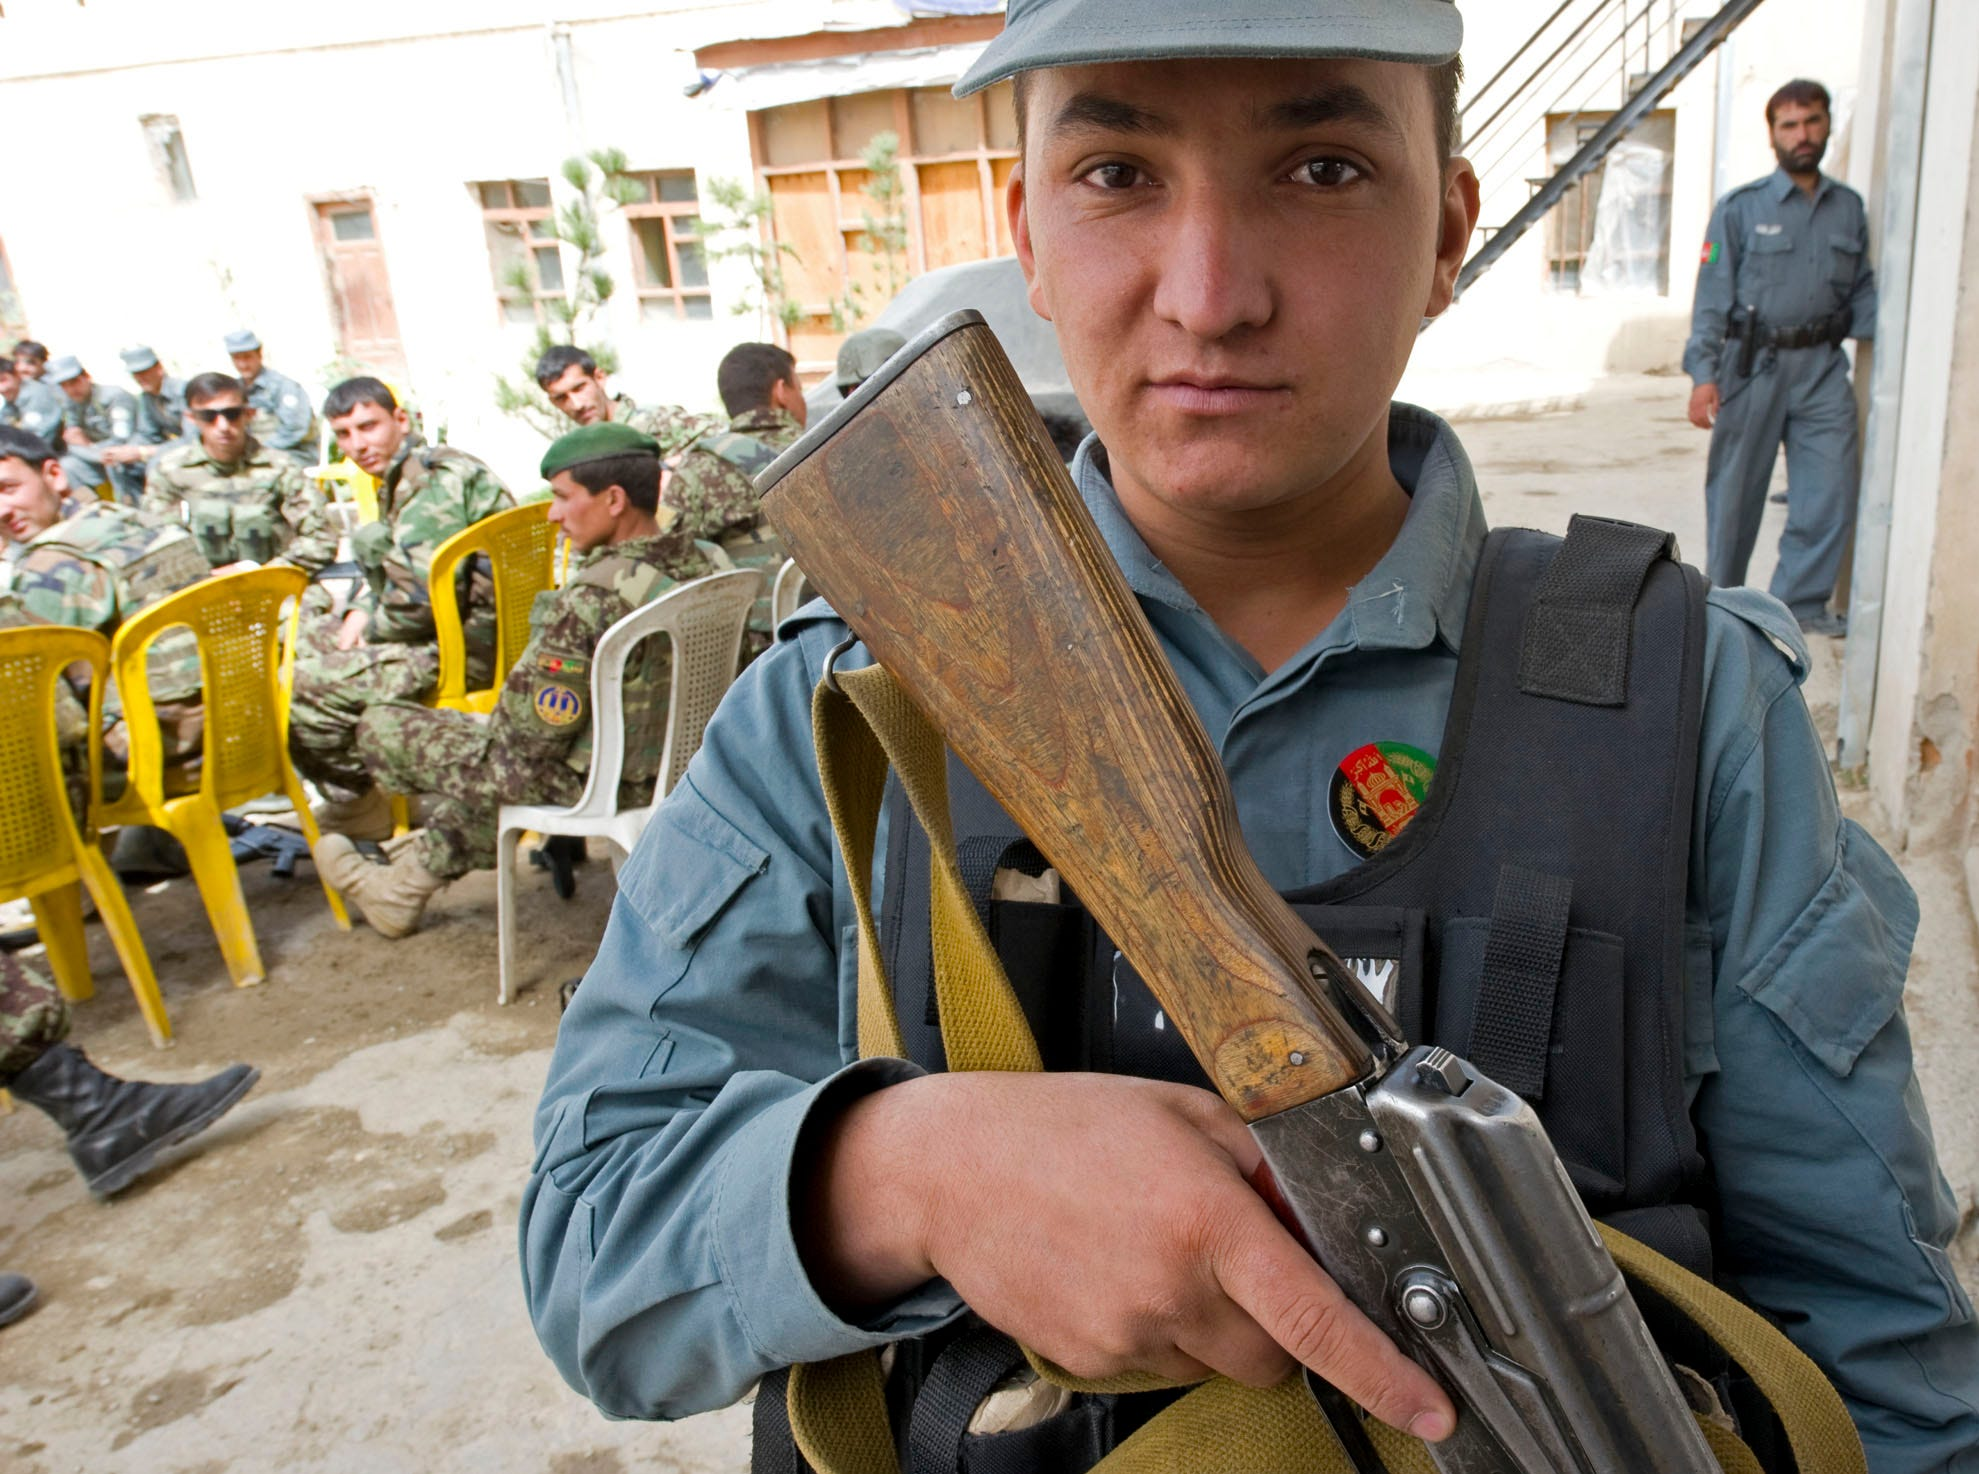 Rahmatullah, a Afghan Uniform Police officer with a rapid-response contingent of the Afghan National Army, waits at a police station in Gardez City on Saturday, September 18, 2010, during Afghanistan's national elections. Afghan Uniform Police along with Border Patrol and Afghan National Army soldiers provided heavy security in and around polling areas in the city.